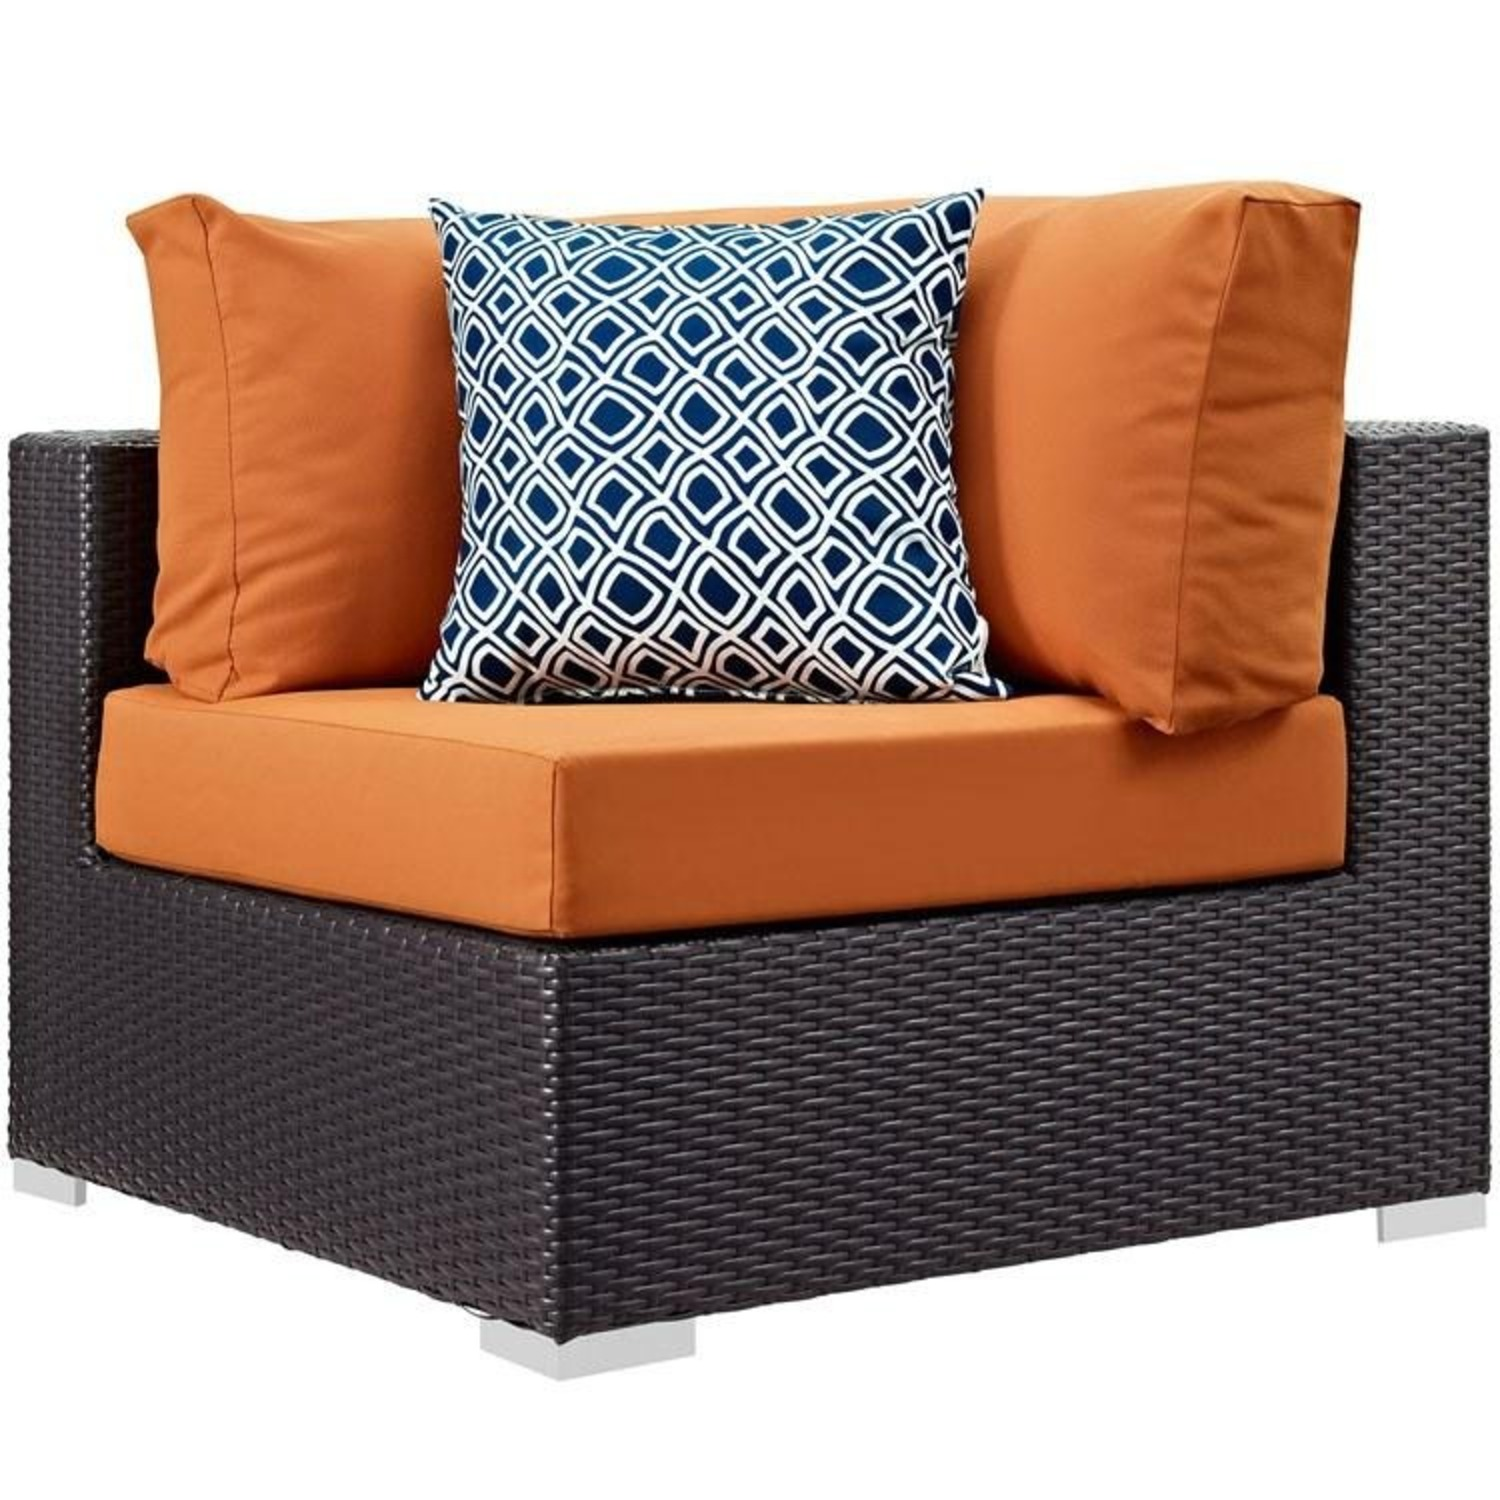 6-Piece Outdoor Sectional In Orange Fabric - image-2